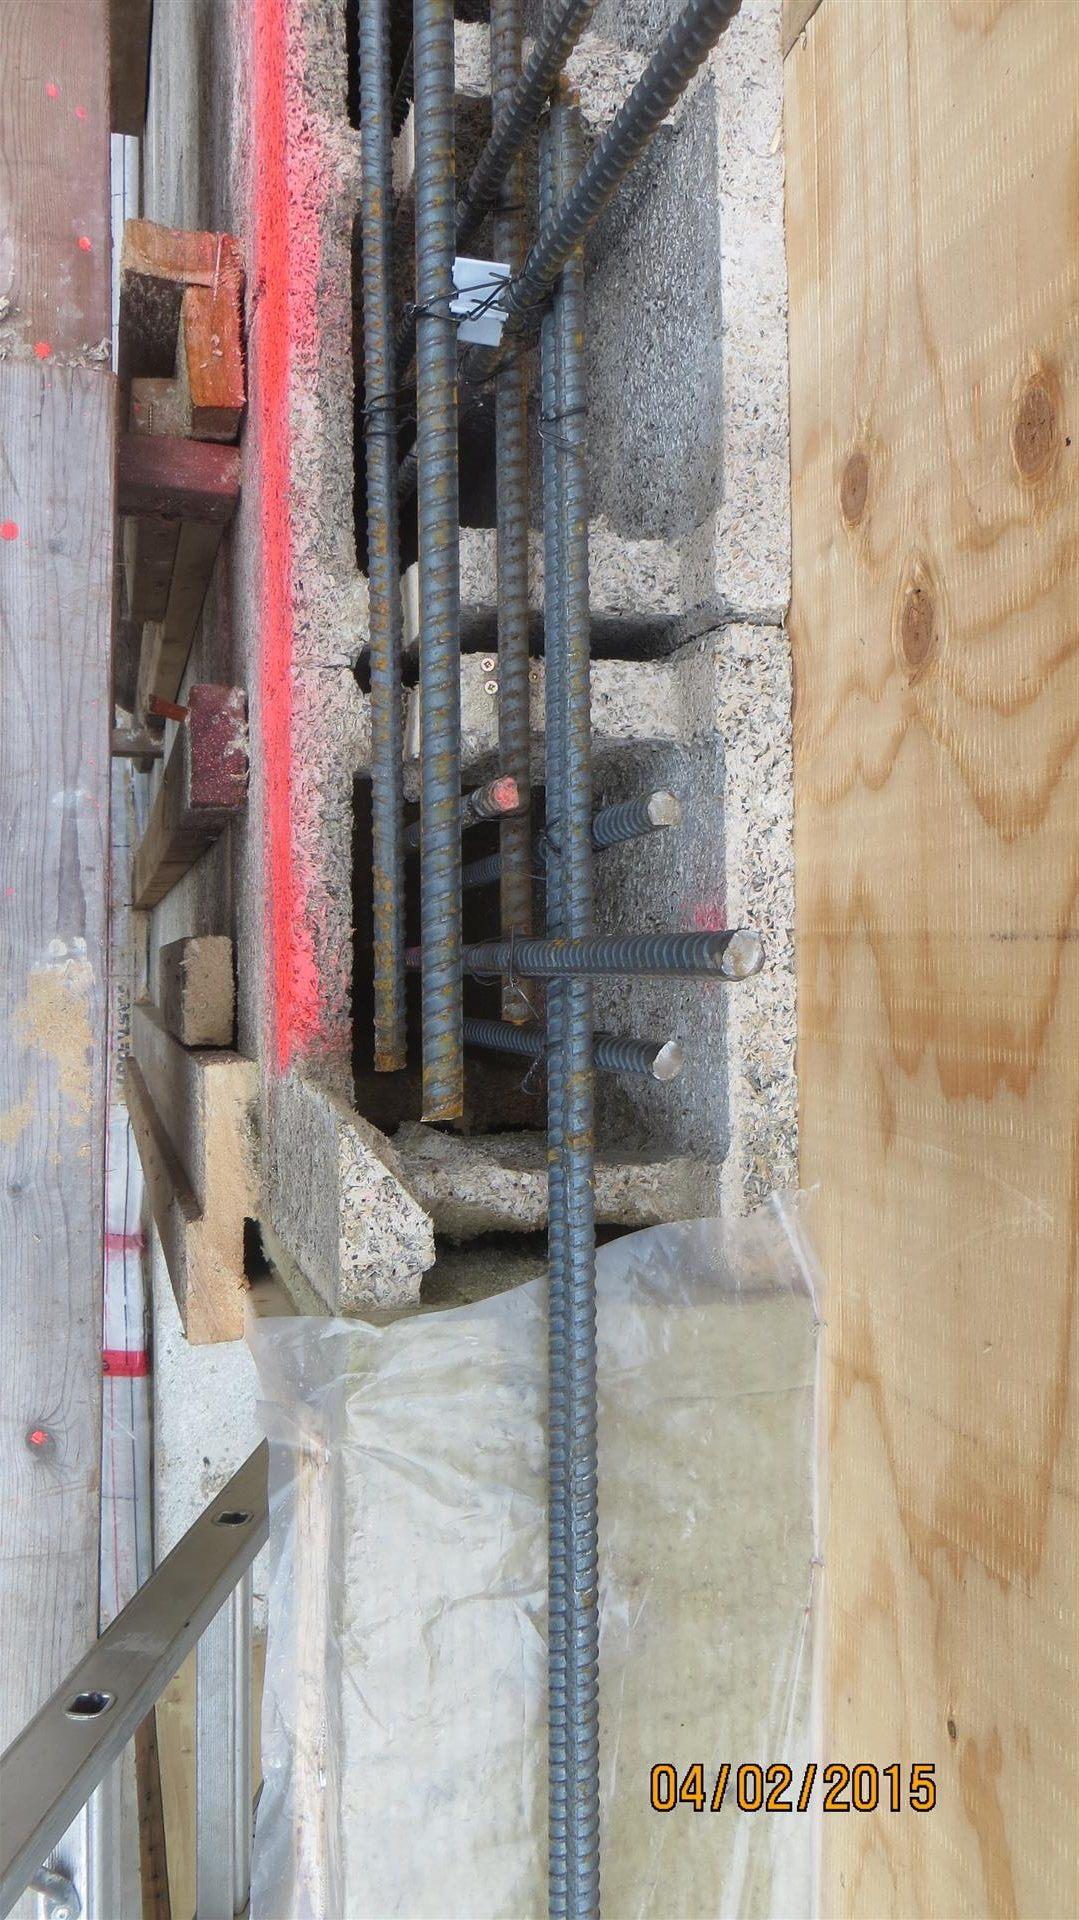 A bundle of bars - each side of an opening or end of an ICF wall needed two extra 15M vertical bars installed.